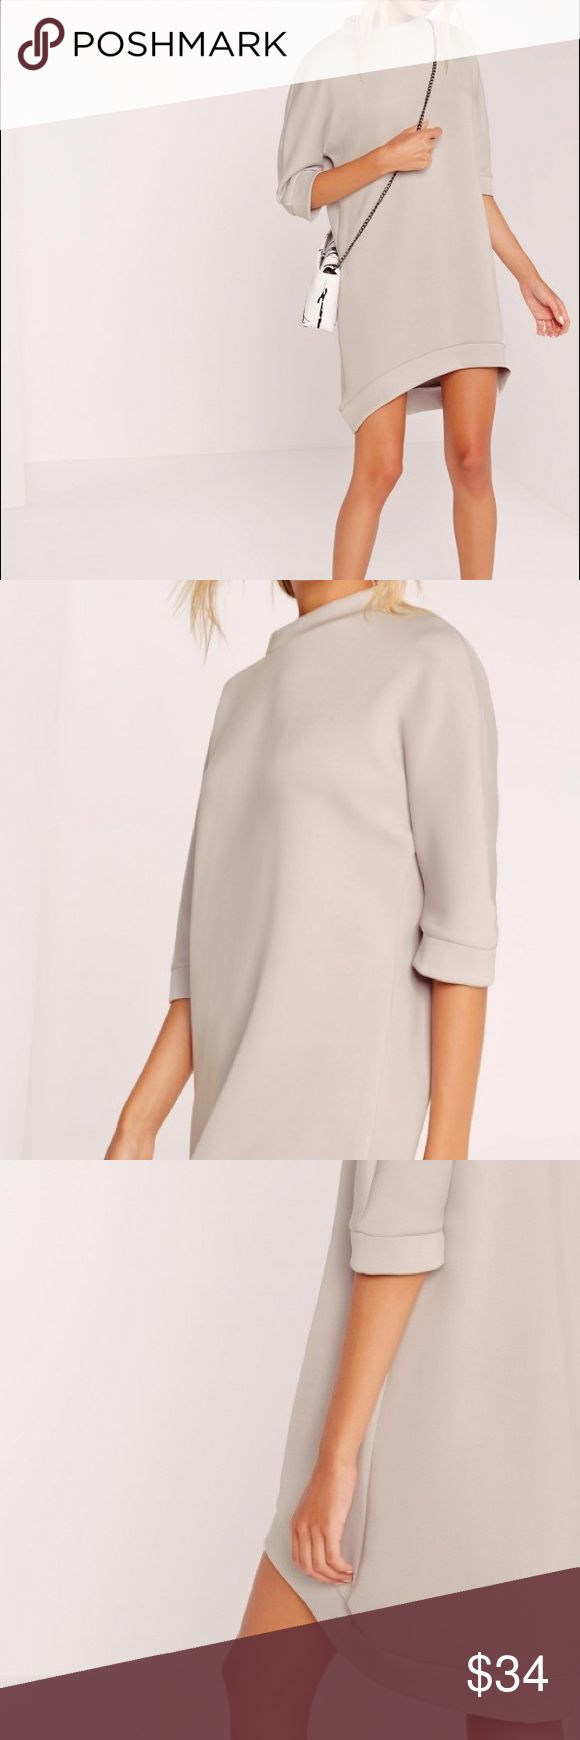 """Missguided curve hem scuba dress sometimes we just don't have time for figure enhancing dresses and we need something a bit more chilled. so may we welcome this beaut grey scuba t-shirt dress; in a sleek and simple cut with a curved hem wear with black suede ankle boots and a parka jacket for a totes babin' look you can rock to work or for the weekend.   oversized fit   95% polyester 5% elastane   approx length 83cm/33"""" (based on a uk size 8 sample)   bella wears a uk size 8 / eu size 36…"""